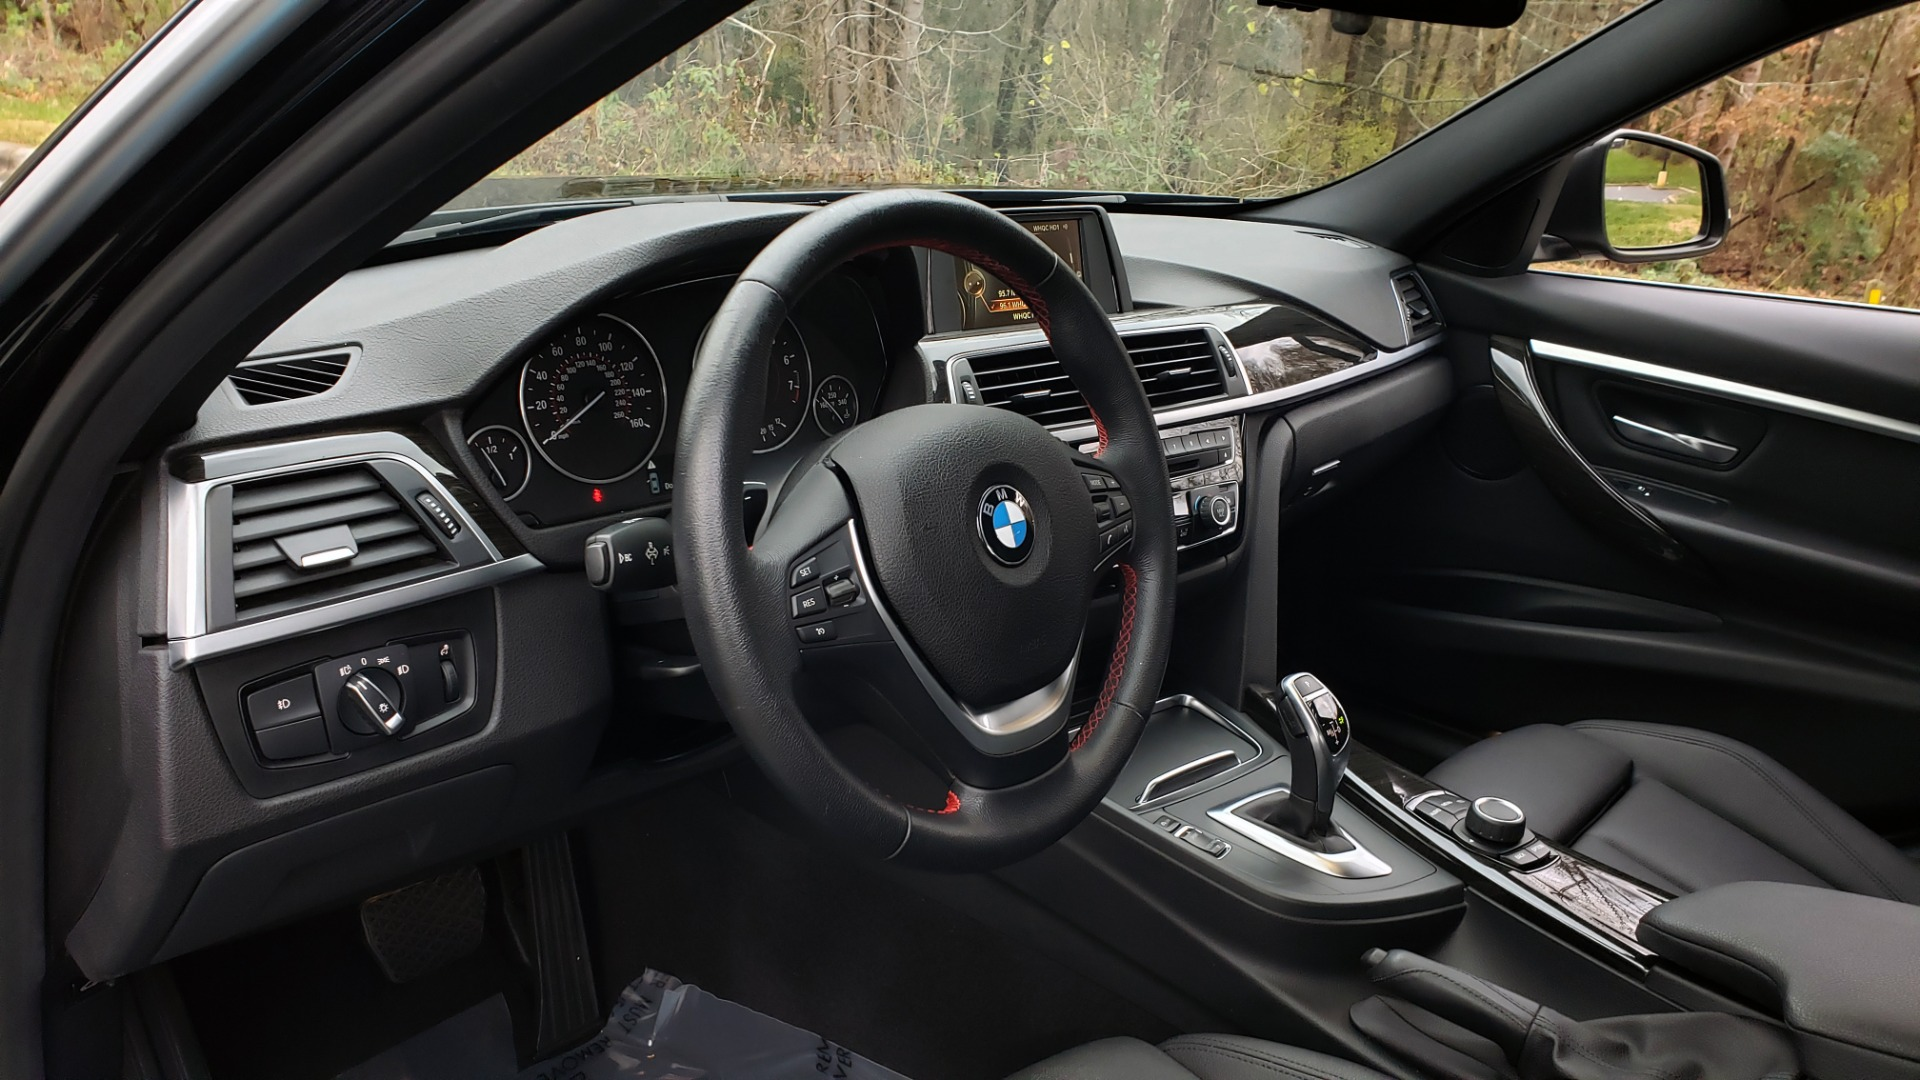 Used 2017 BMW 3 SERIES 330I XDRIVE / AWD / HEATED SEATS / LOW MILES for sale $23,495 at Formula Imports in Charlotte NC 28227 33